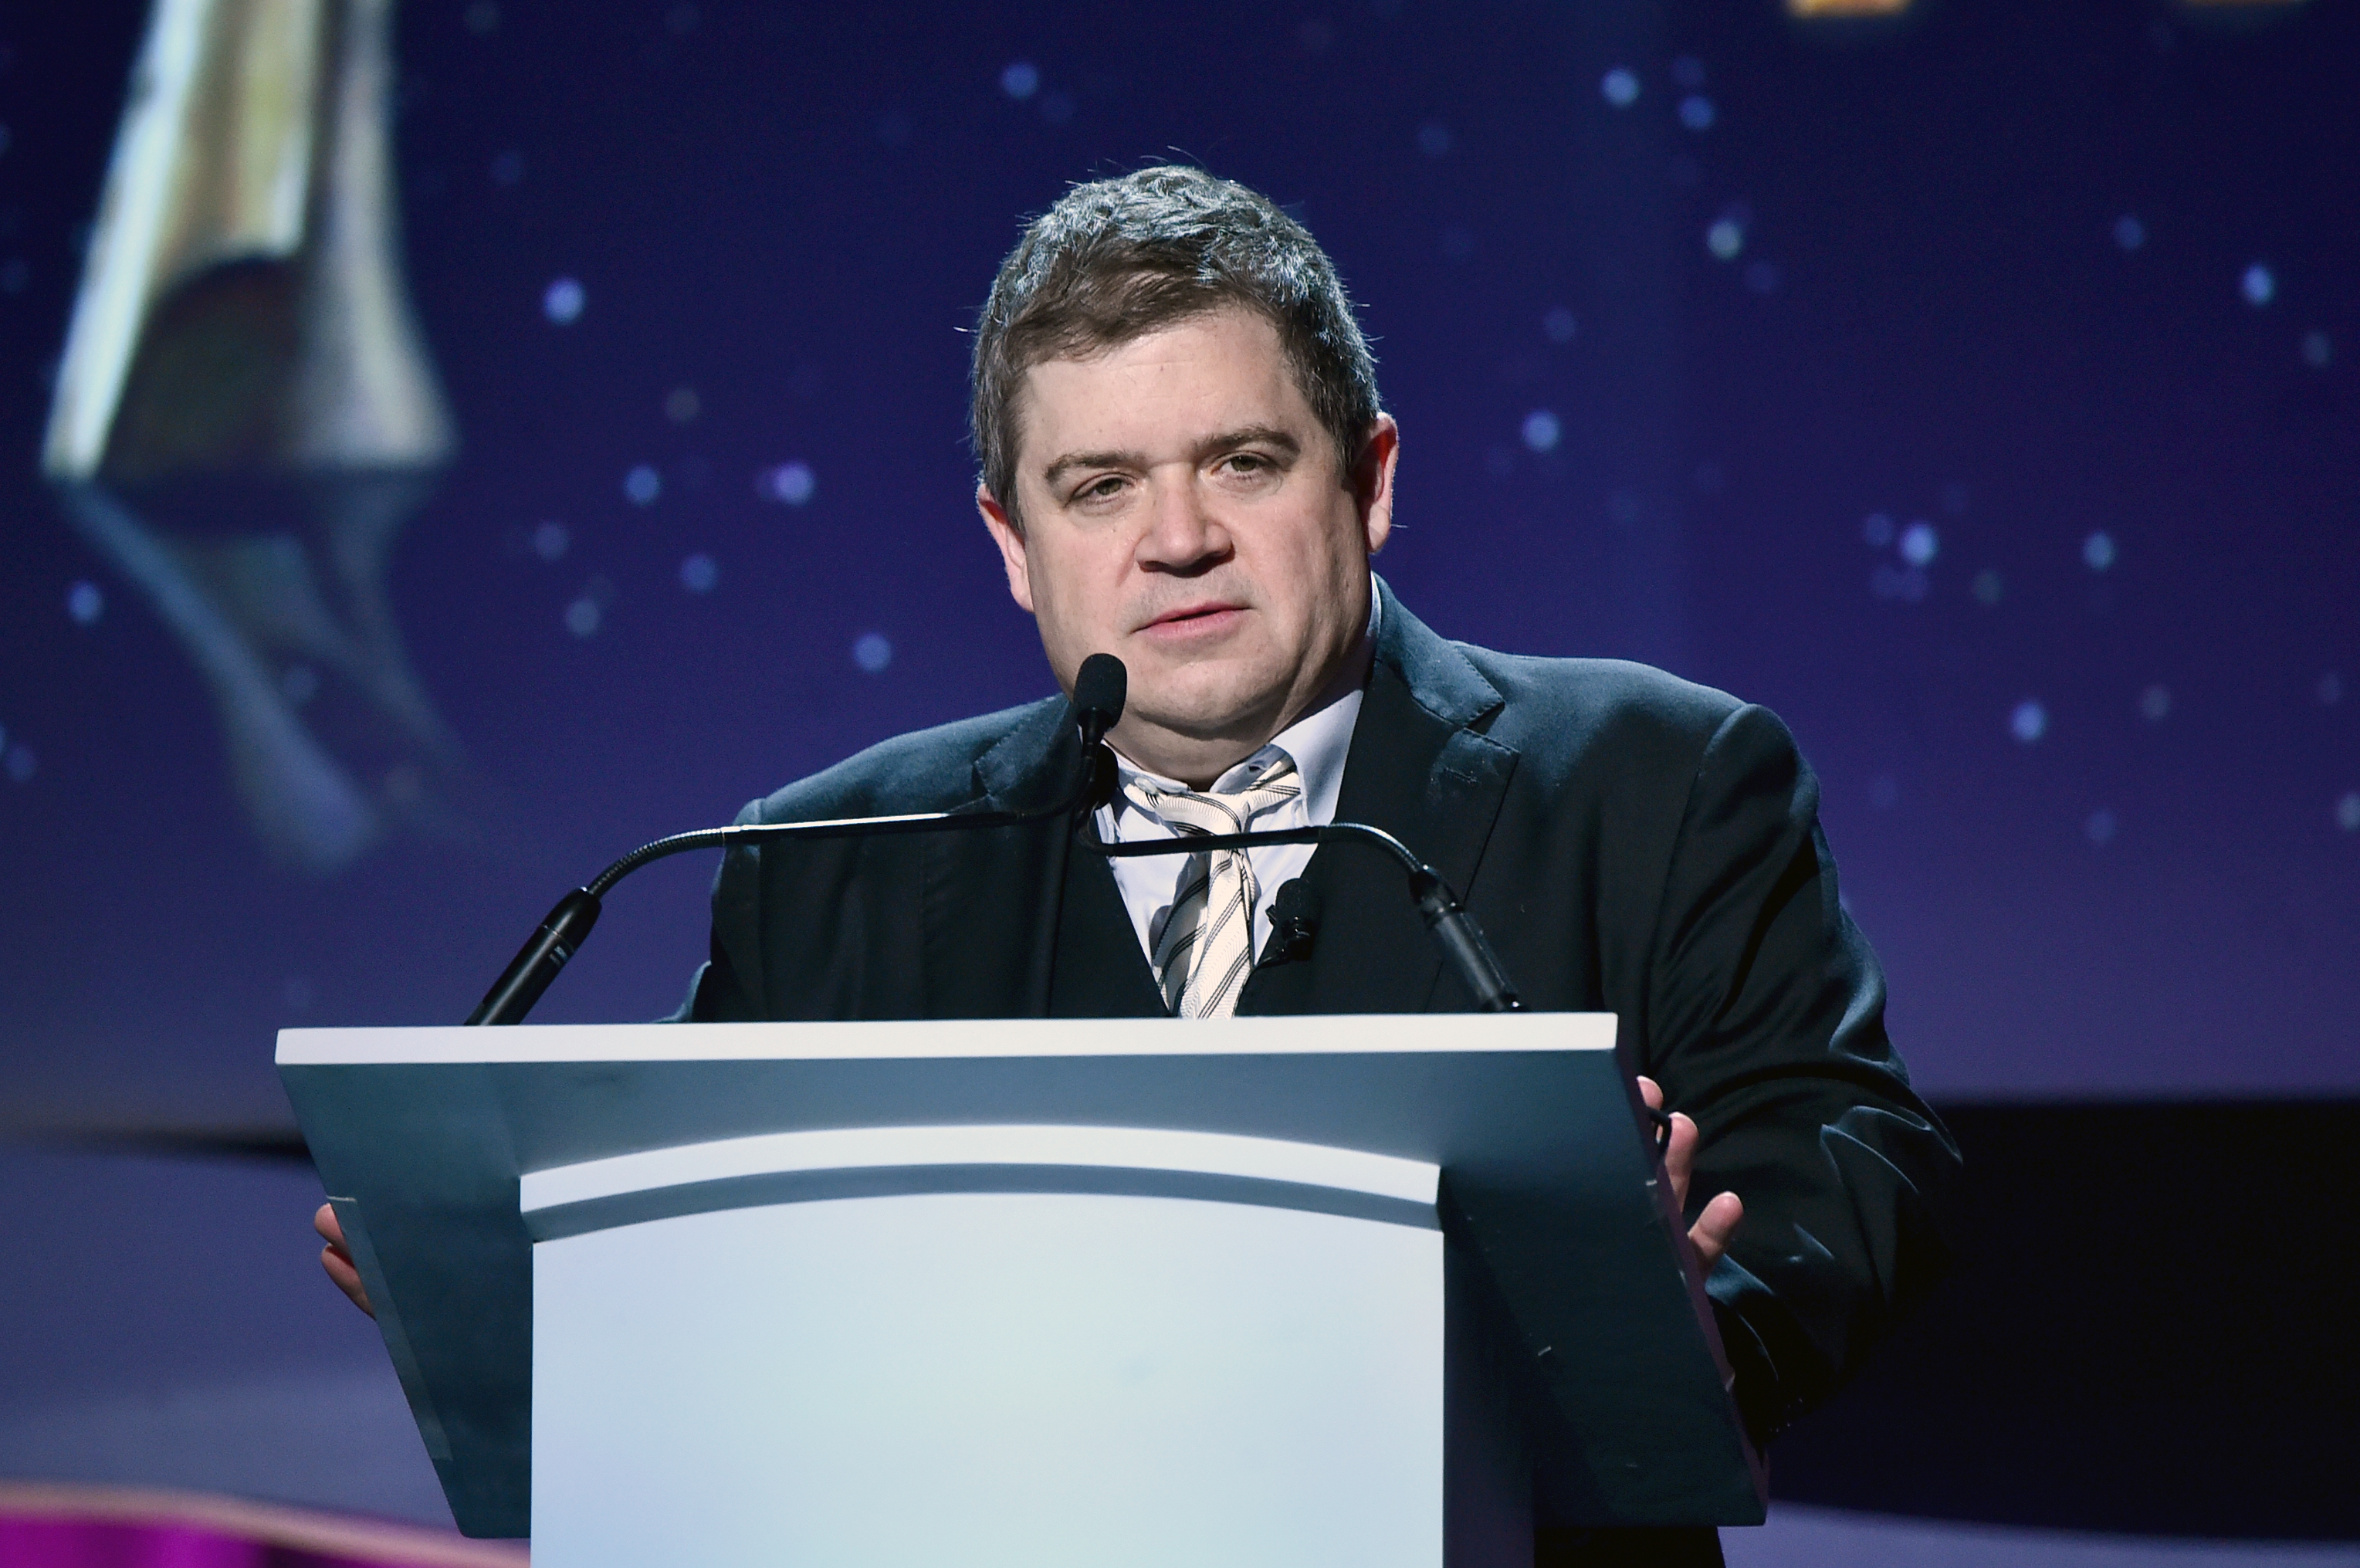 Host Patton Oswalt speaks onstage during the 2016 Writers Guild Awards at the Hyatt Regency Century Plaza on February 13, 2016 in Los Angeles, California.